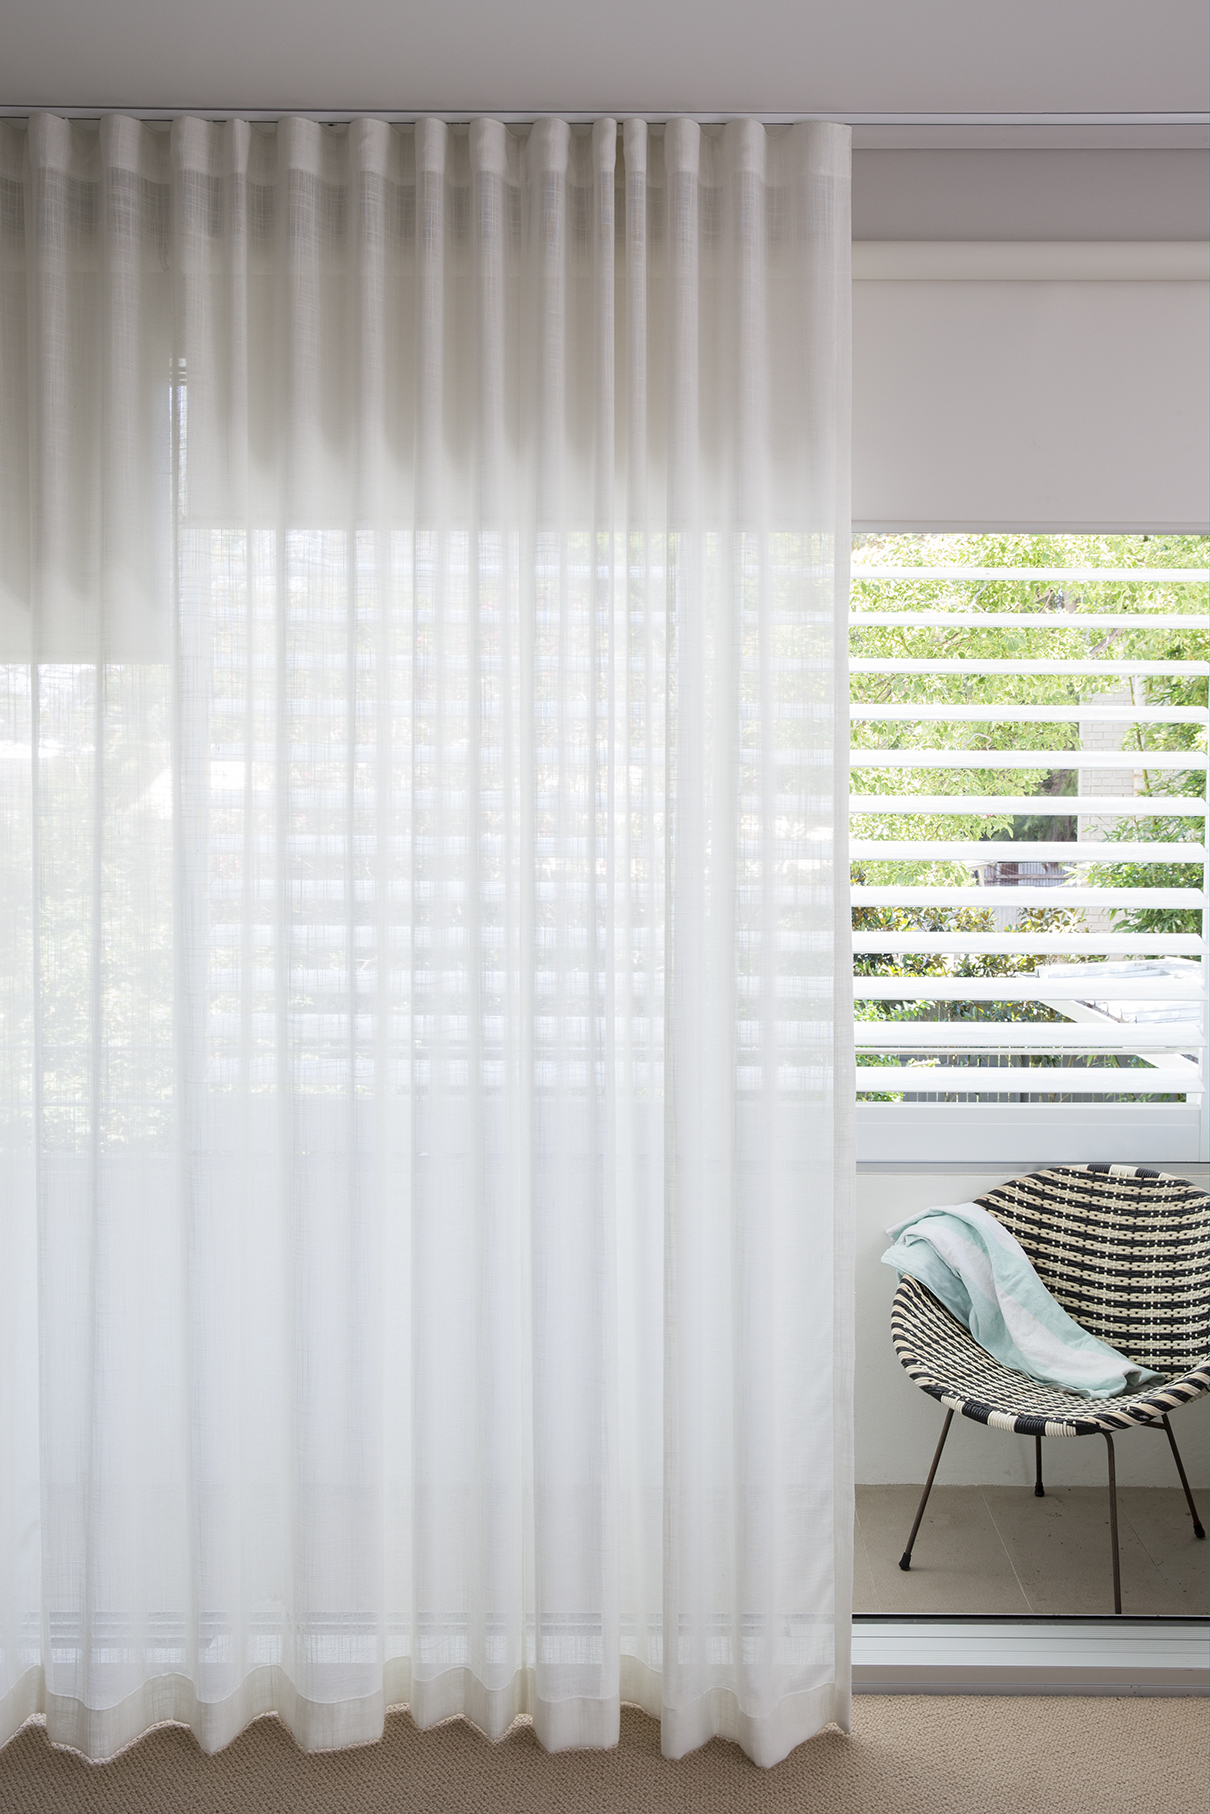 Interior design curtains blinds shutters and awnings Curtains and blinds